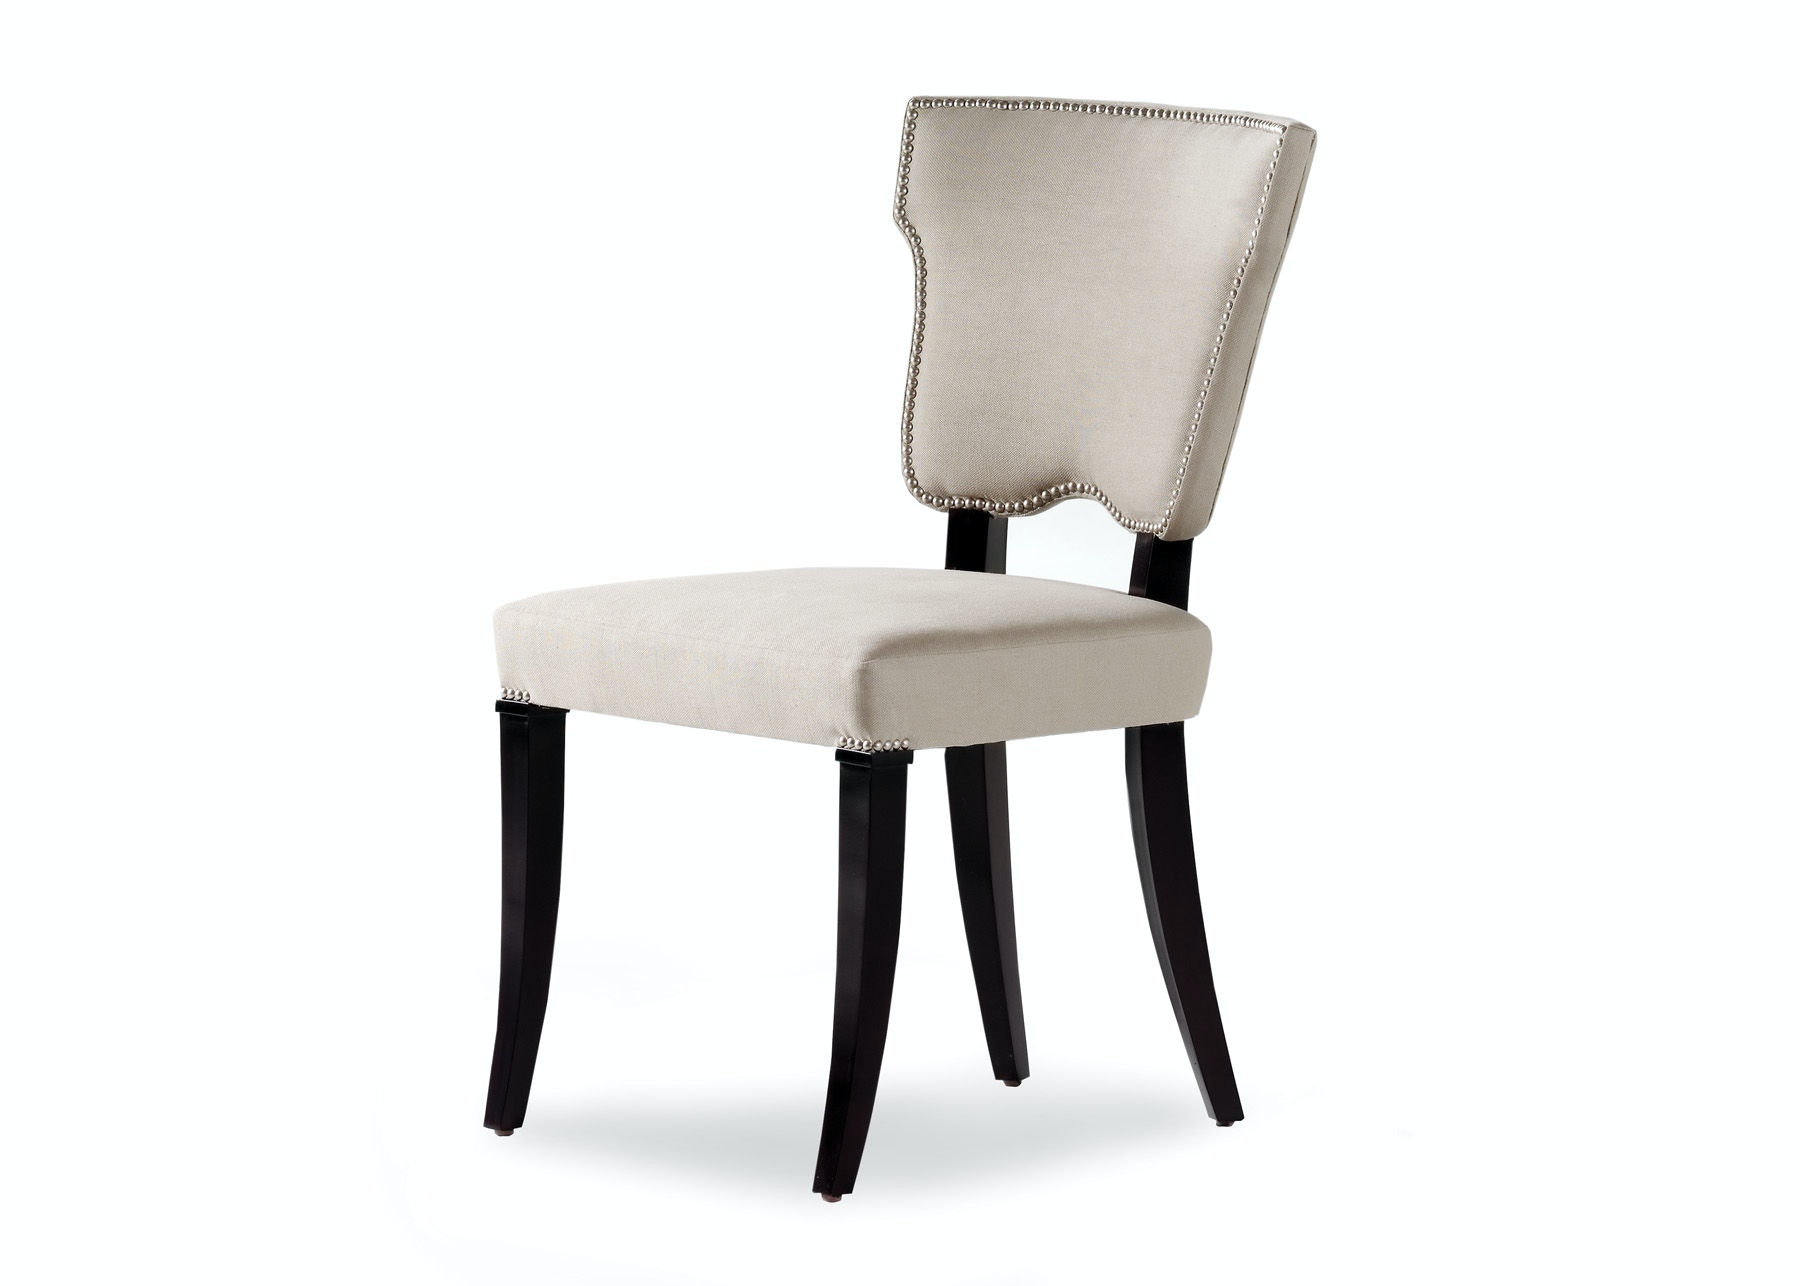 Jessica Charles Dining Room Palace Dining Chair 1102   Lenoir Empire  Furniture   Johnson City, TN